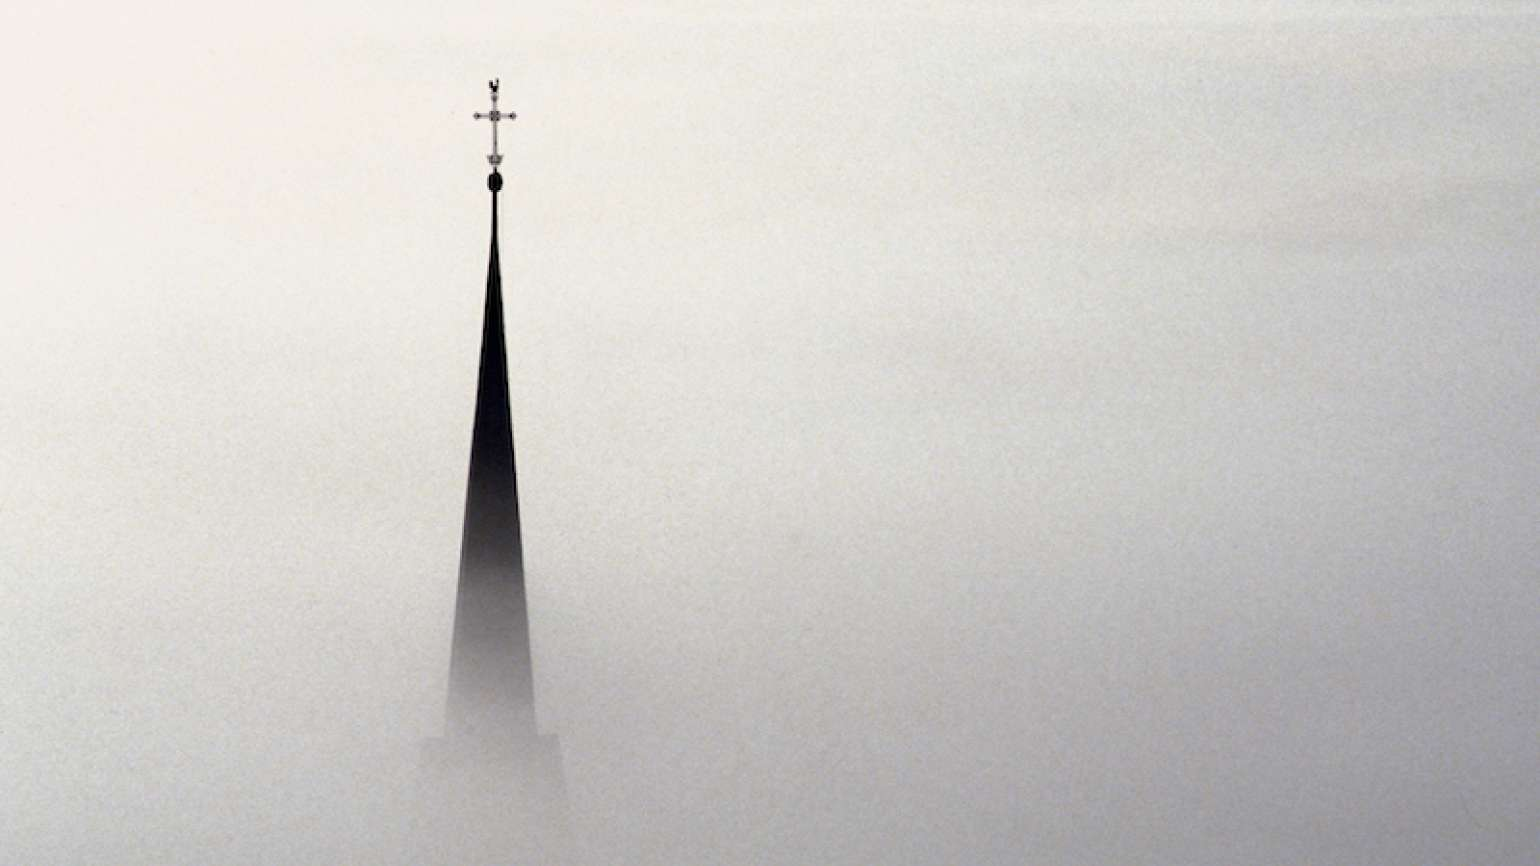 Photo of church steeple by sodapix+sodapix for Thinkstock